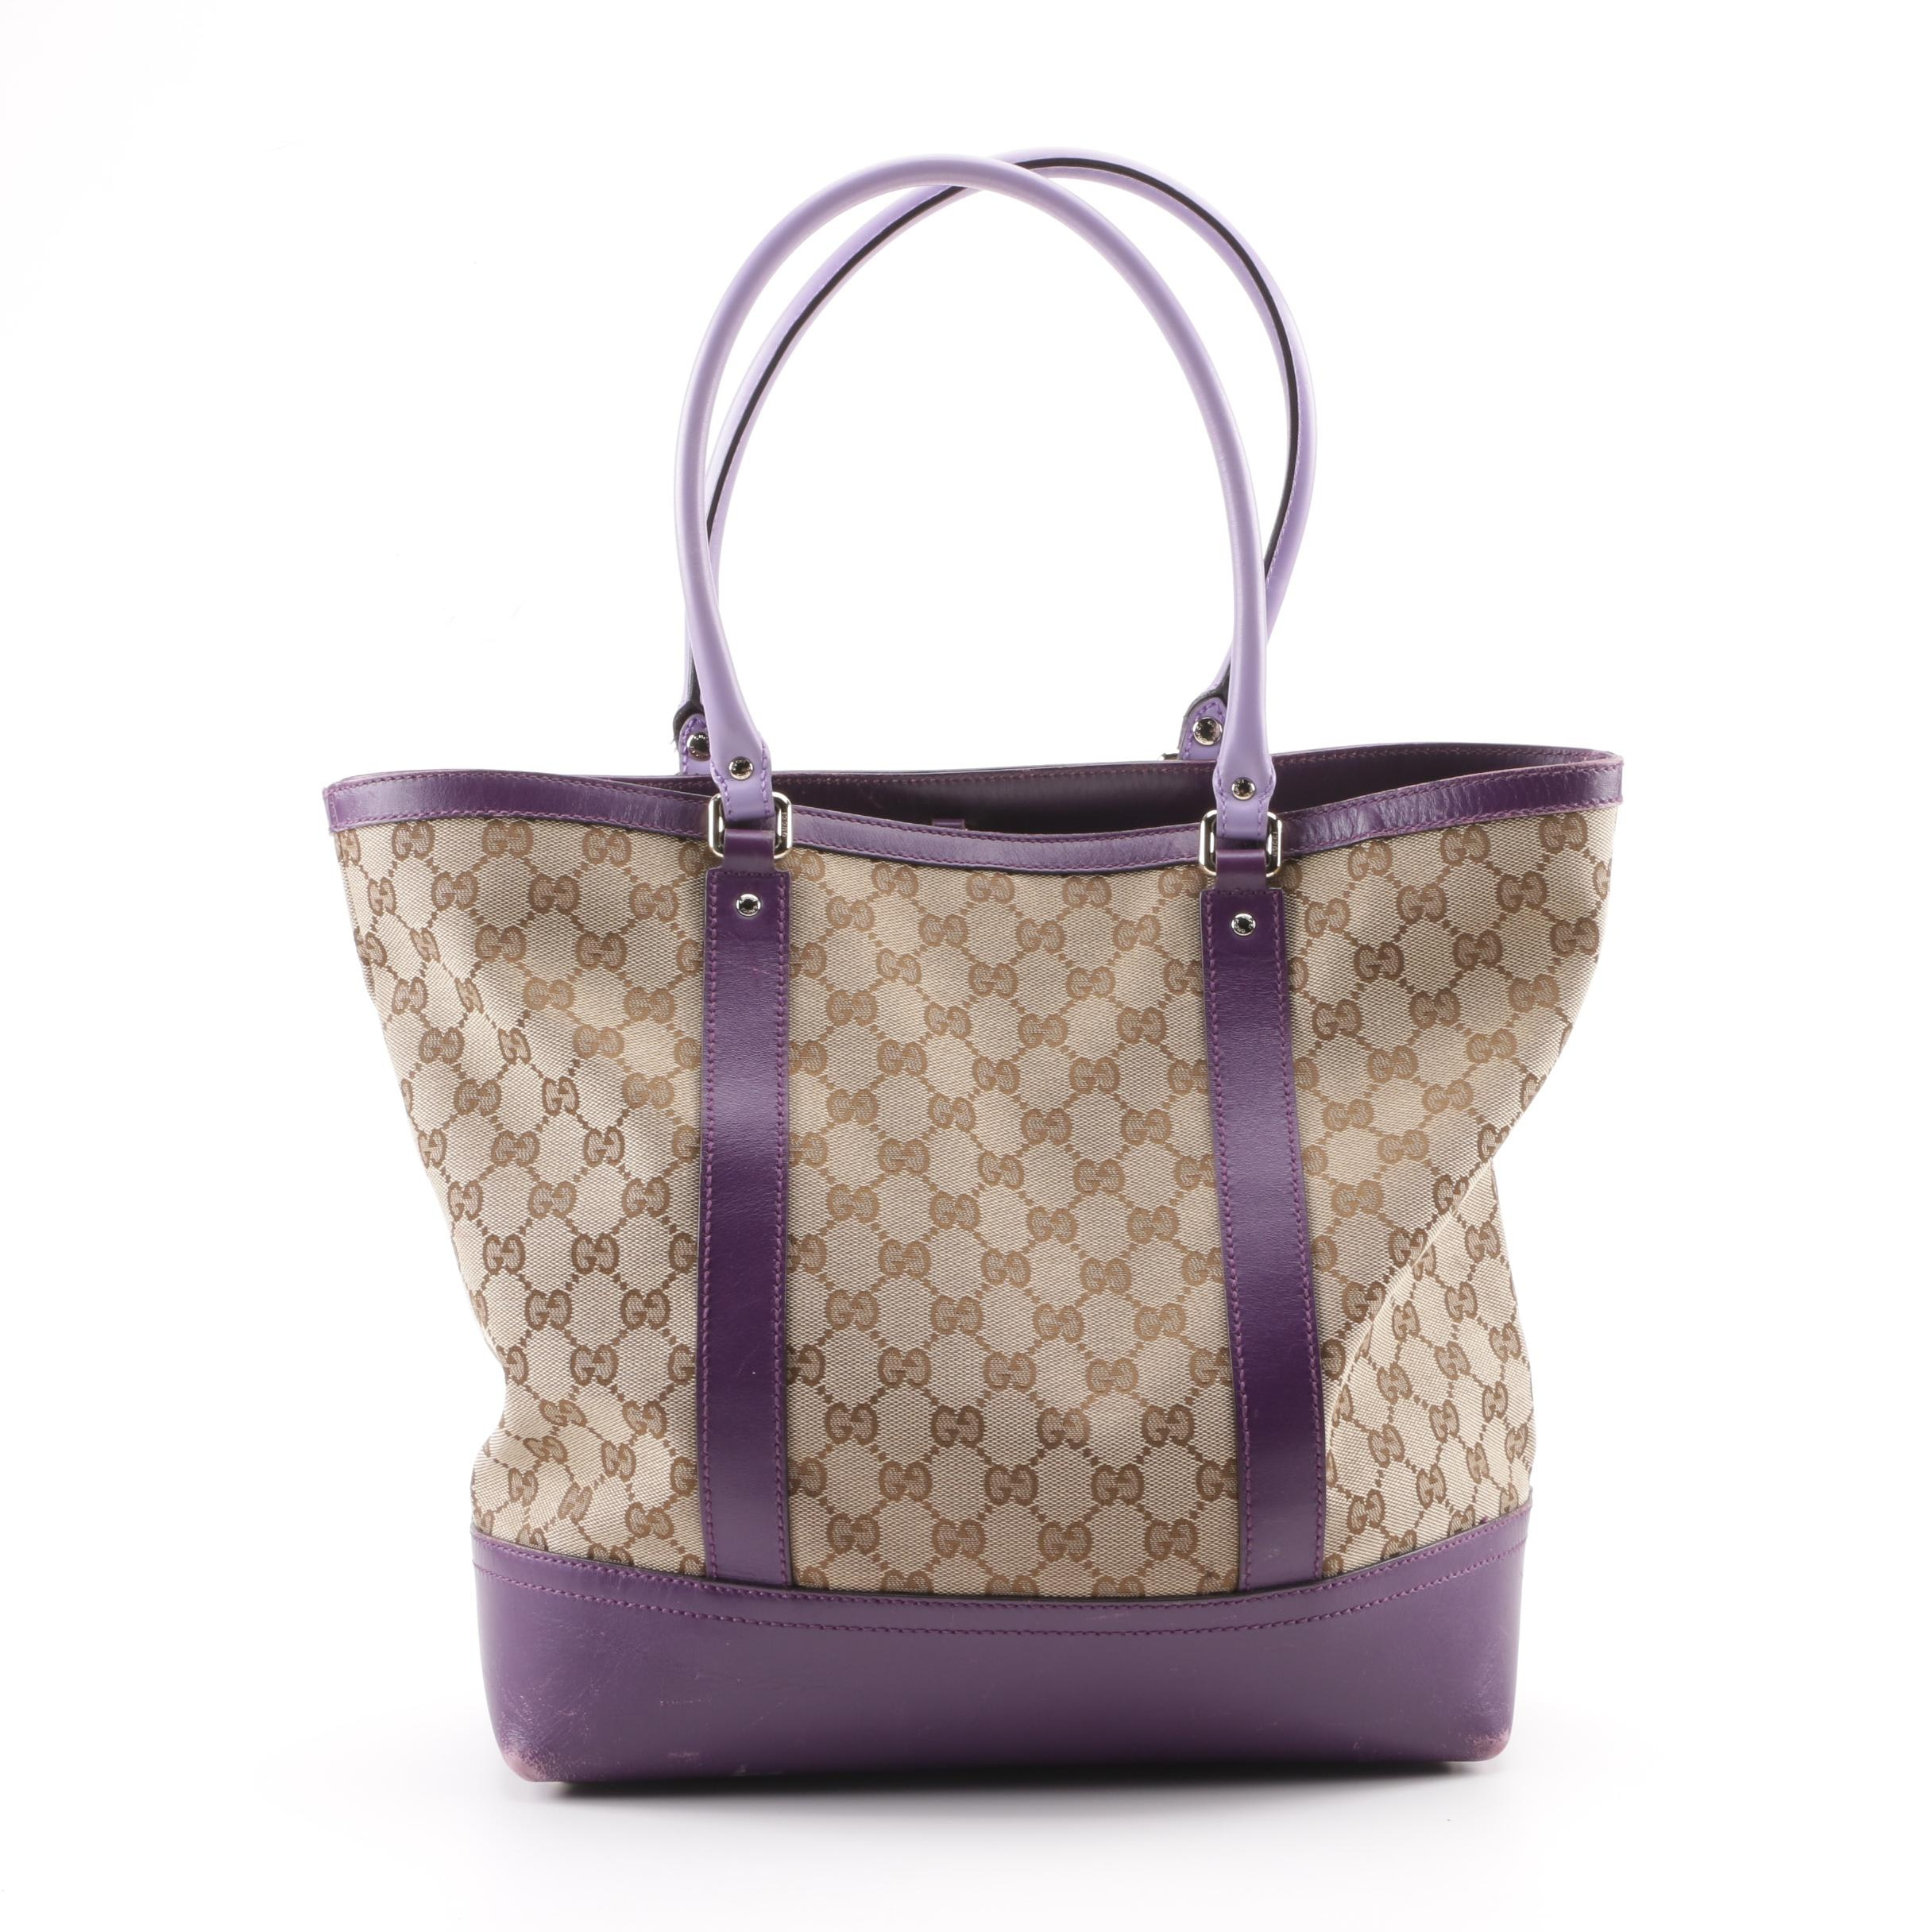 Gucci GG Canvas Tote with Purple Leather Trim